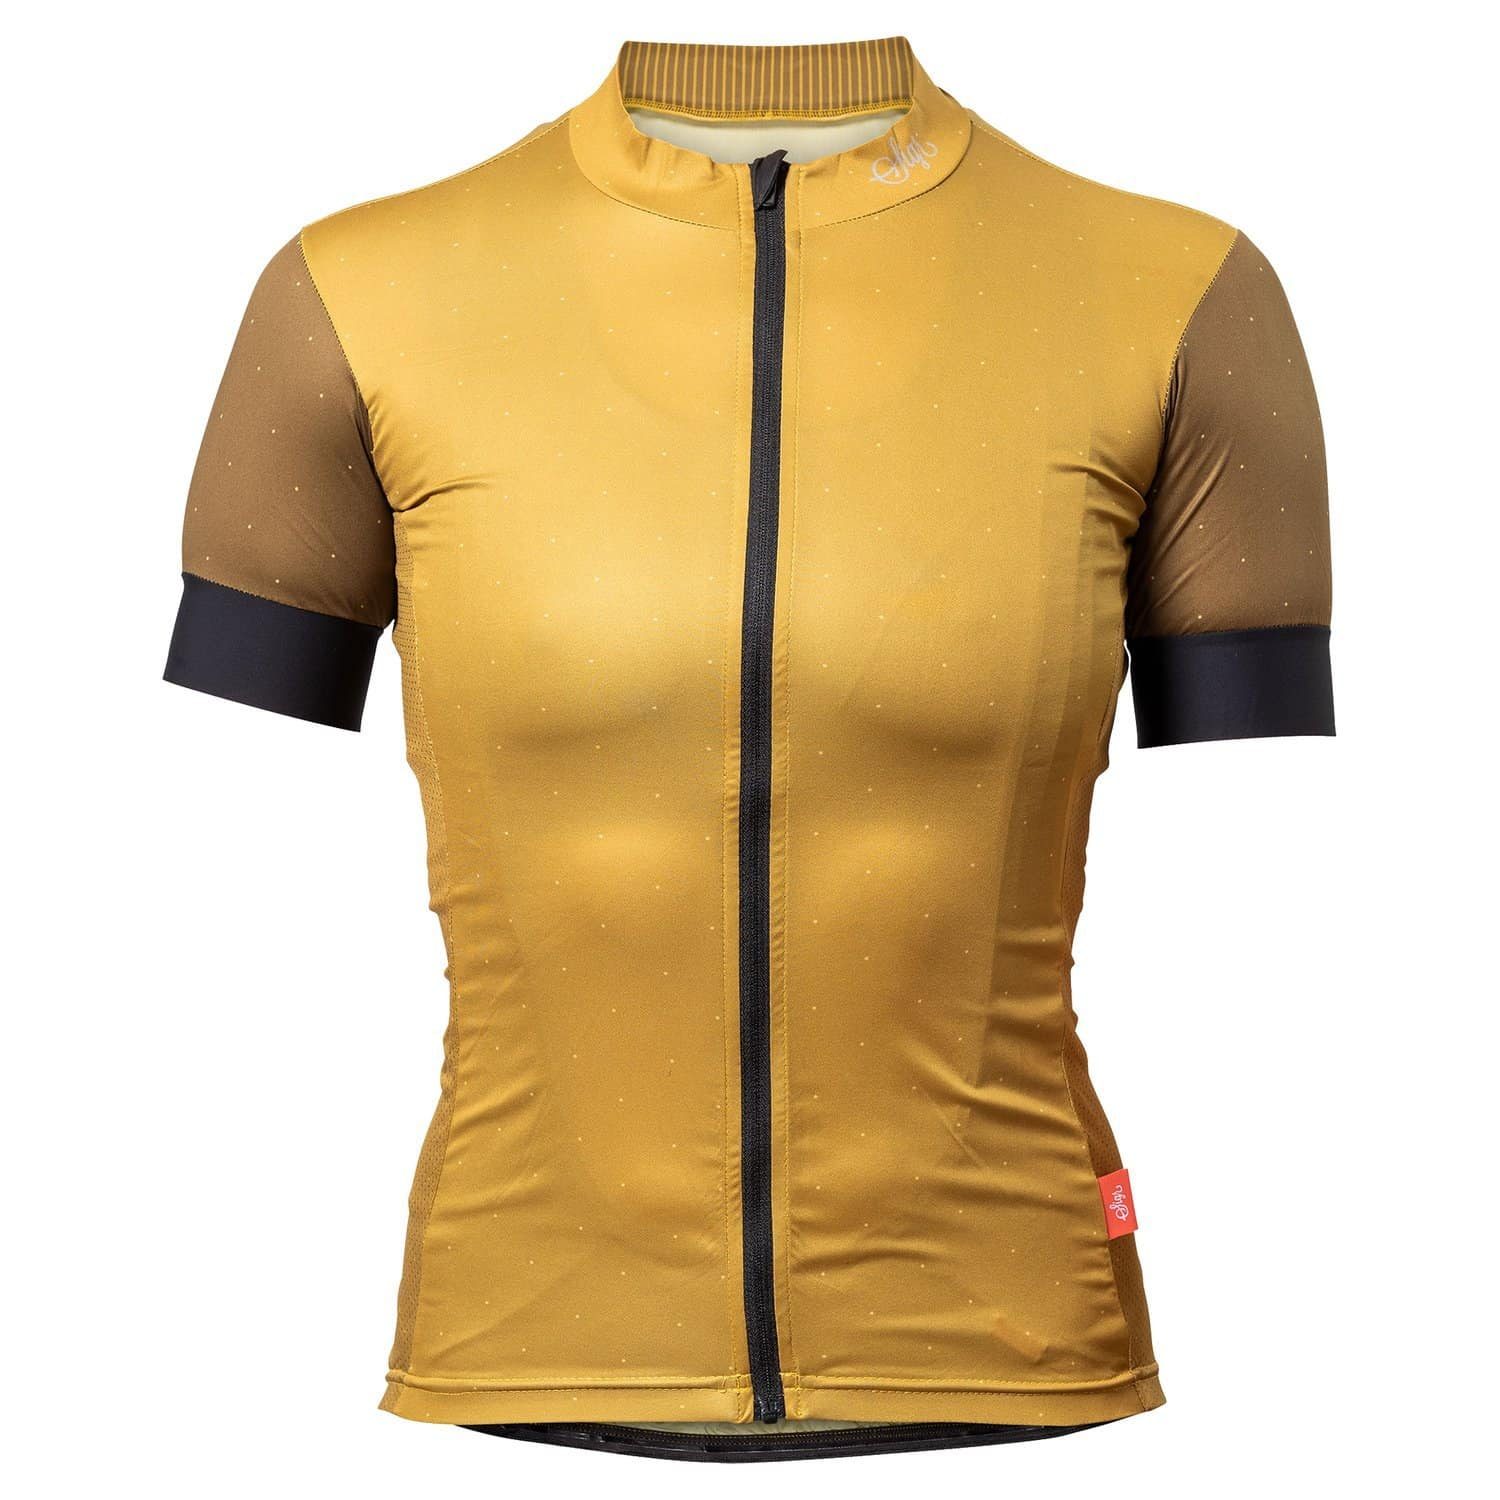 SIGR 'Gullviva' Yellow Cycling Jersey for Women